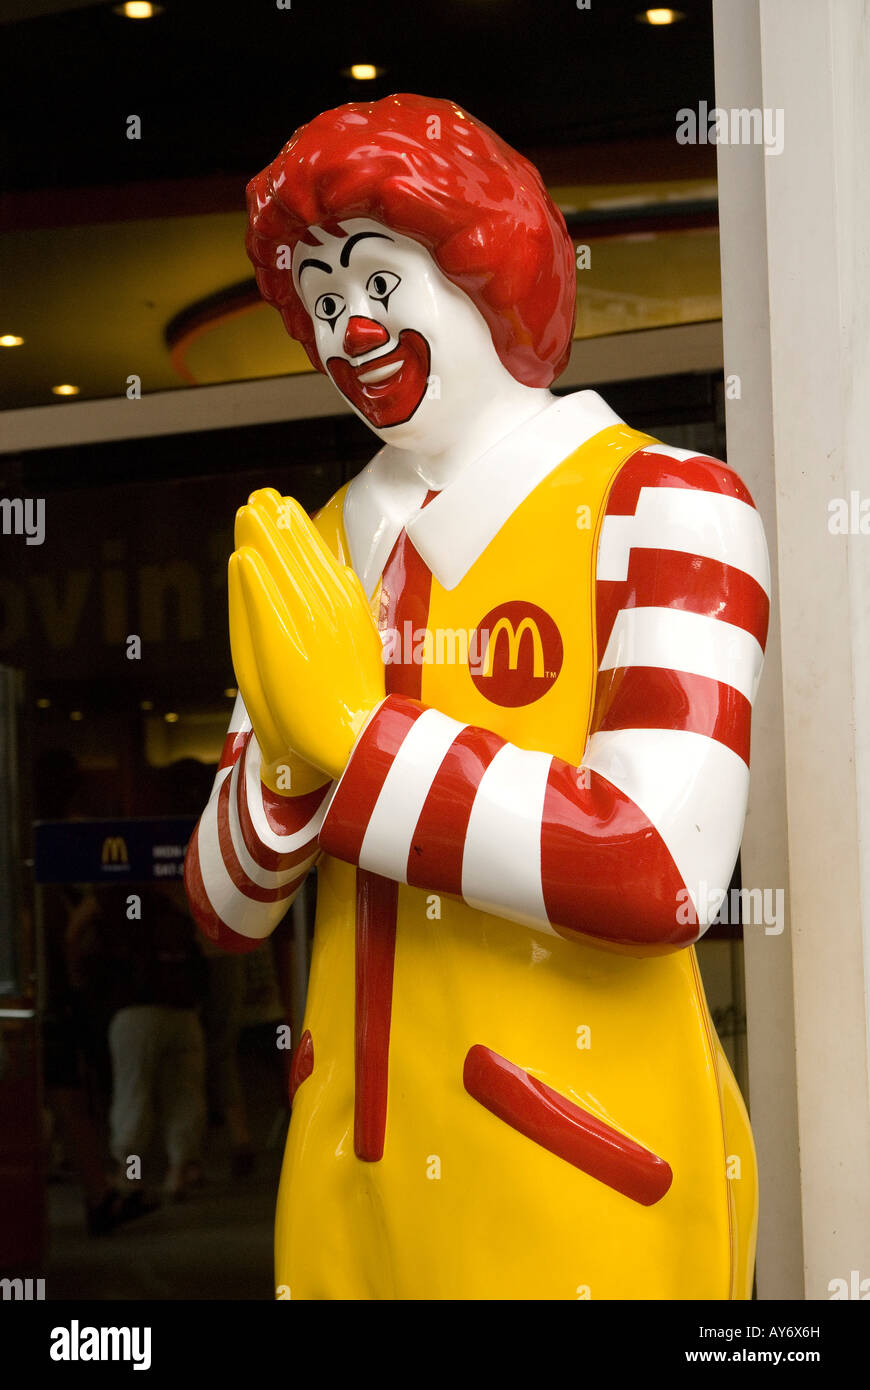 Ronald mcdonald greeting customers with the traditional thai ronald mcdonald greeting customers with the traditional thai greeting called a wai at the entrance to a mcdonalds restaurant ban kristyandbryce Images